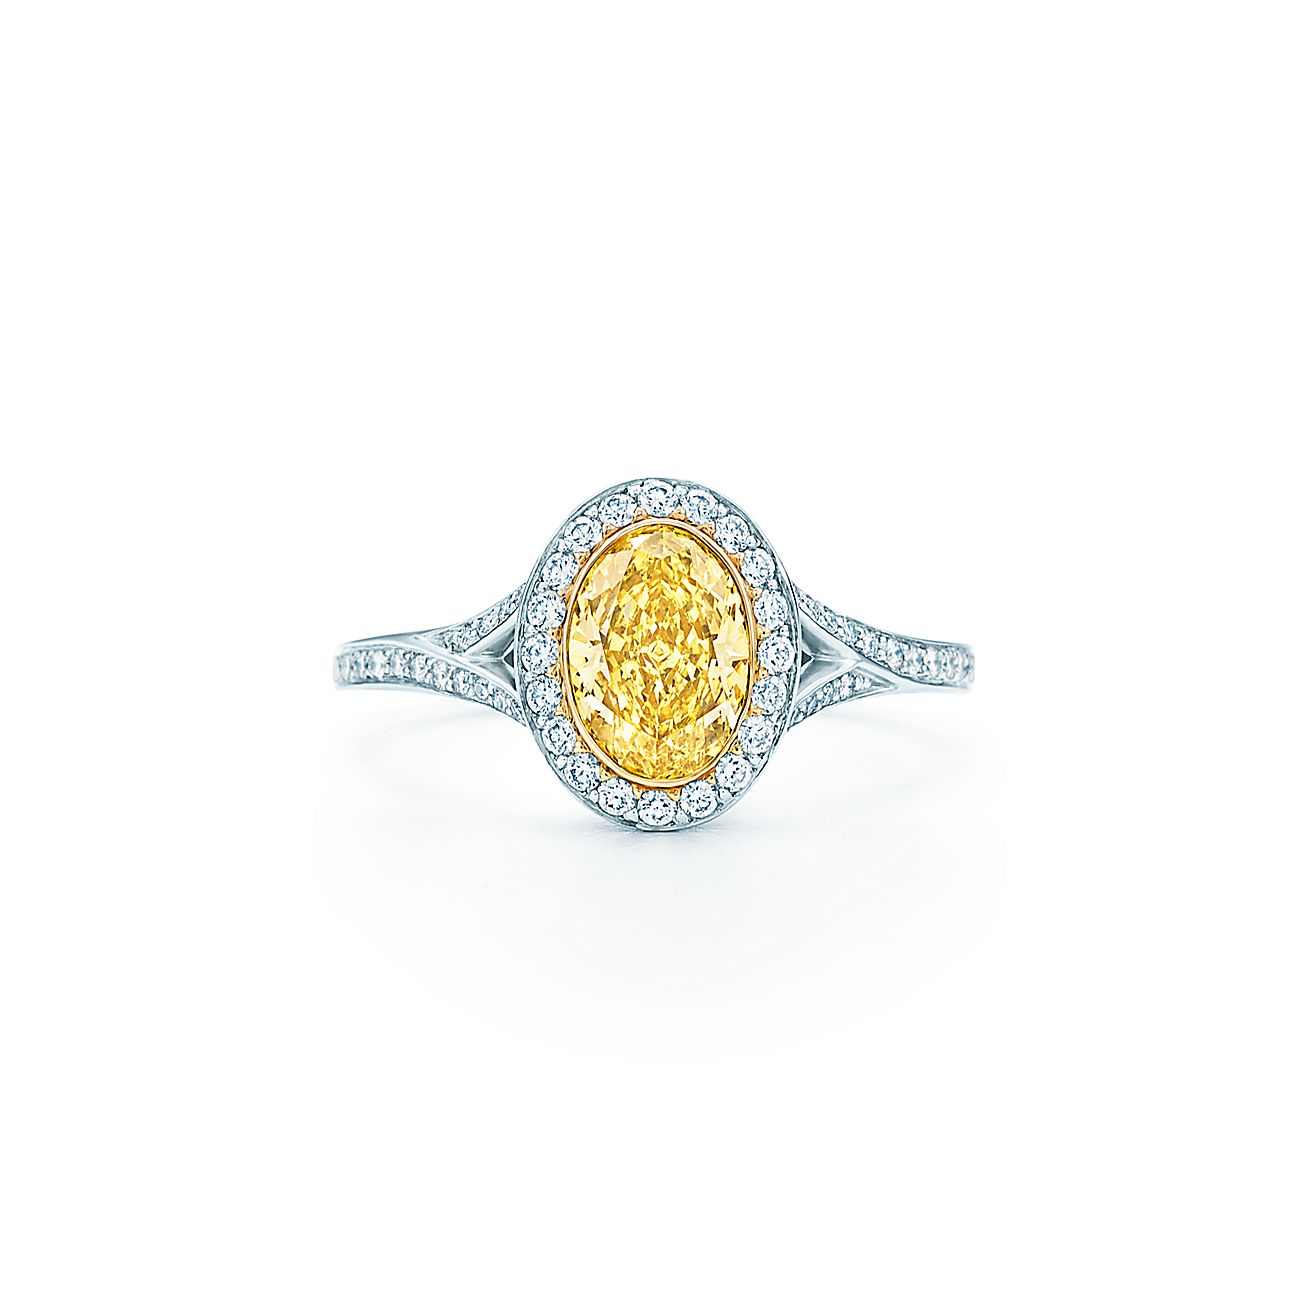 Tiffany And Co Yellow Diamond Ring Price